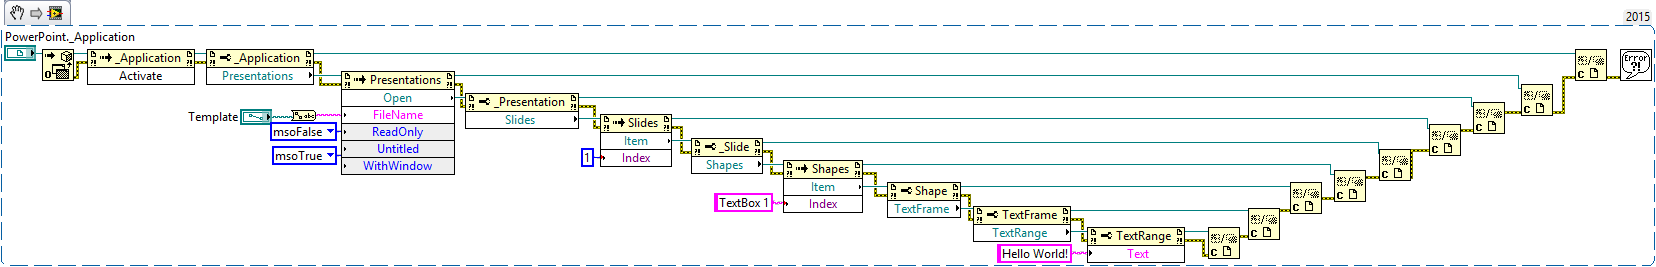 Solved: Add text string to a textbox that already exists in a ...